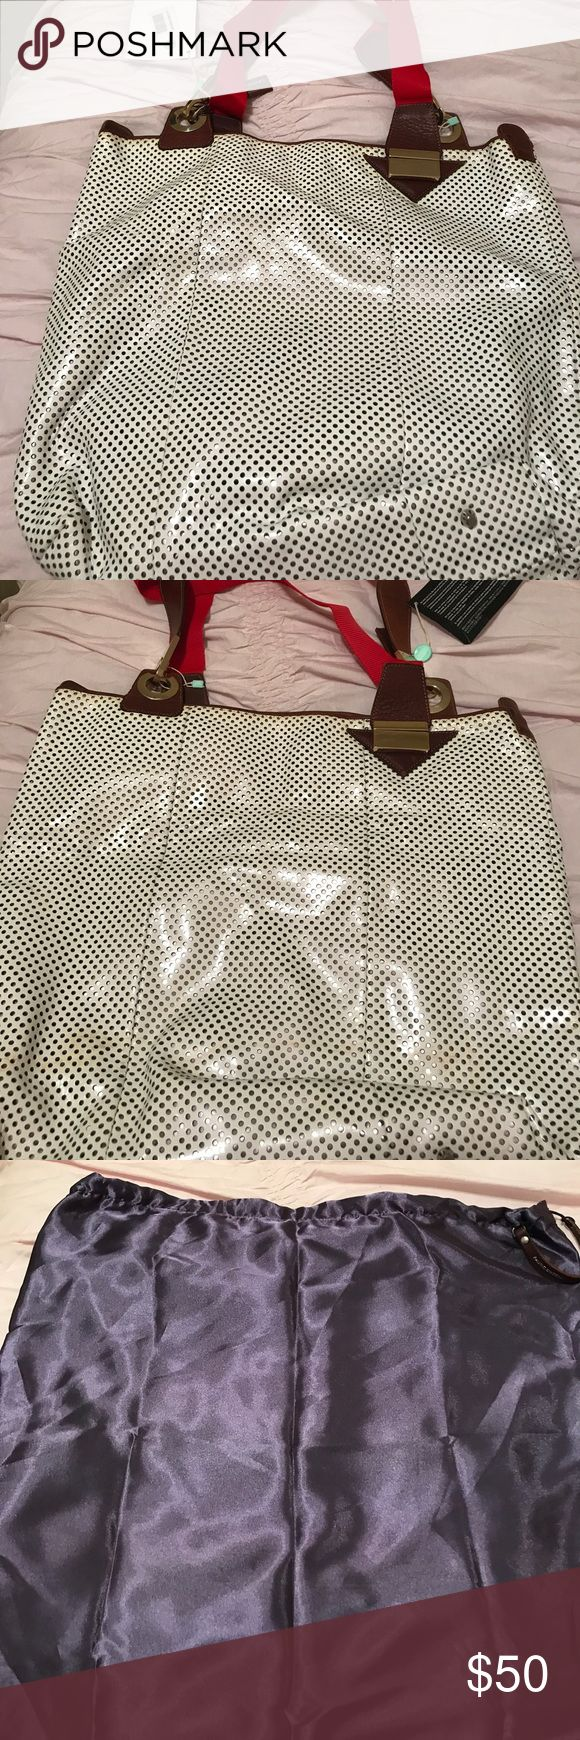 Pauric Sweeney purse Made in Italy! With dust bag If you have any questions please ask in the comments pauric sweeny Bags Shoulder Bags